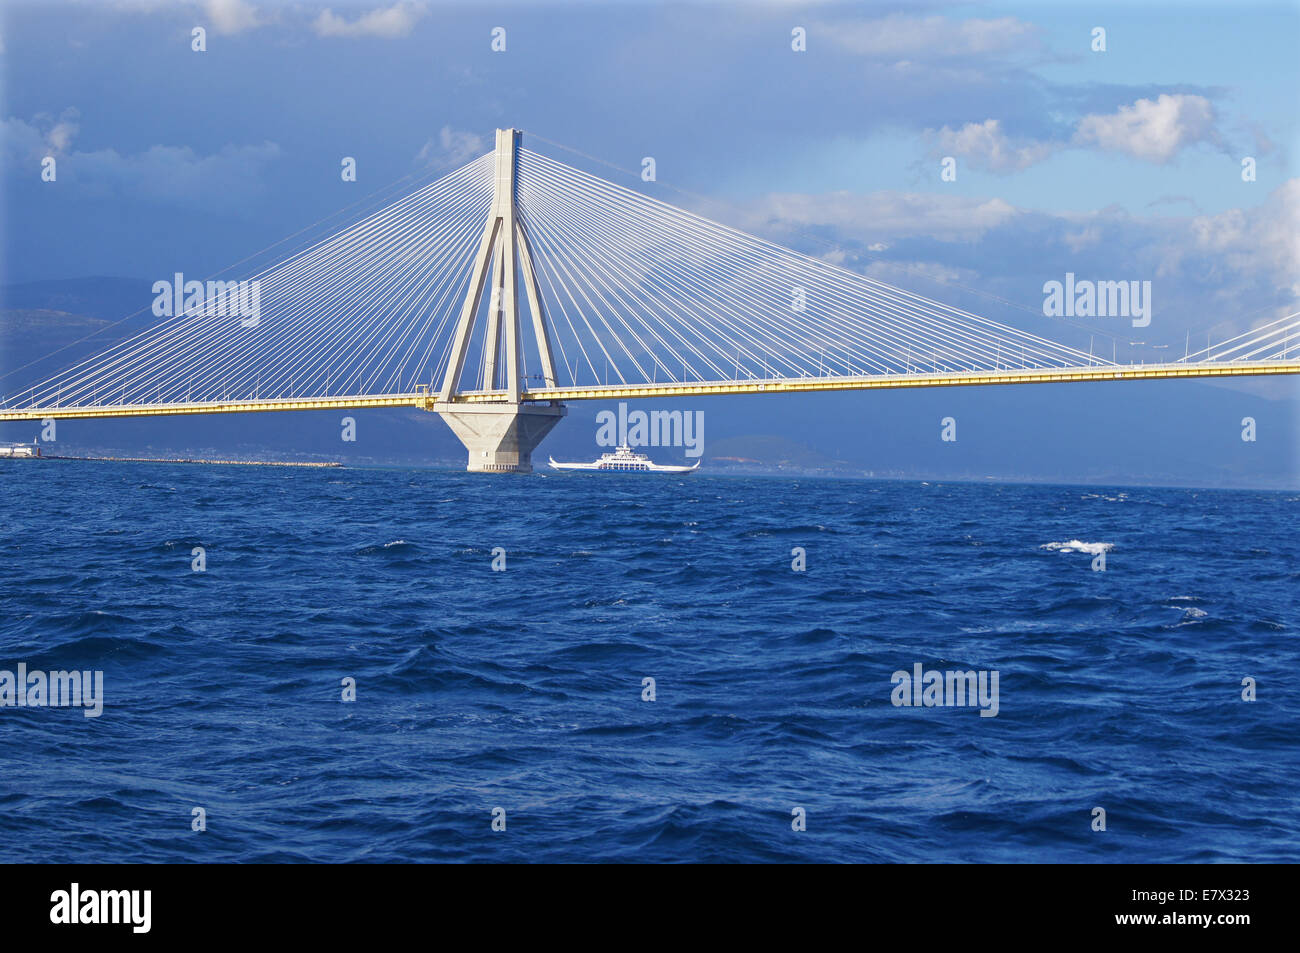 Rio–Antirrio bridge in the sunset light - Stock Image